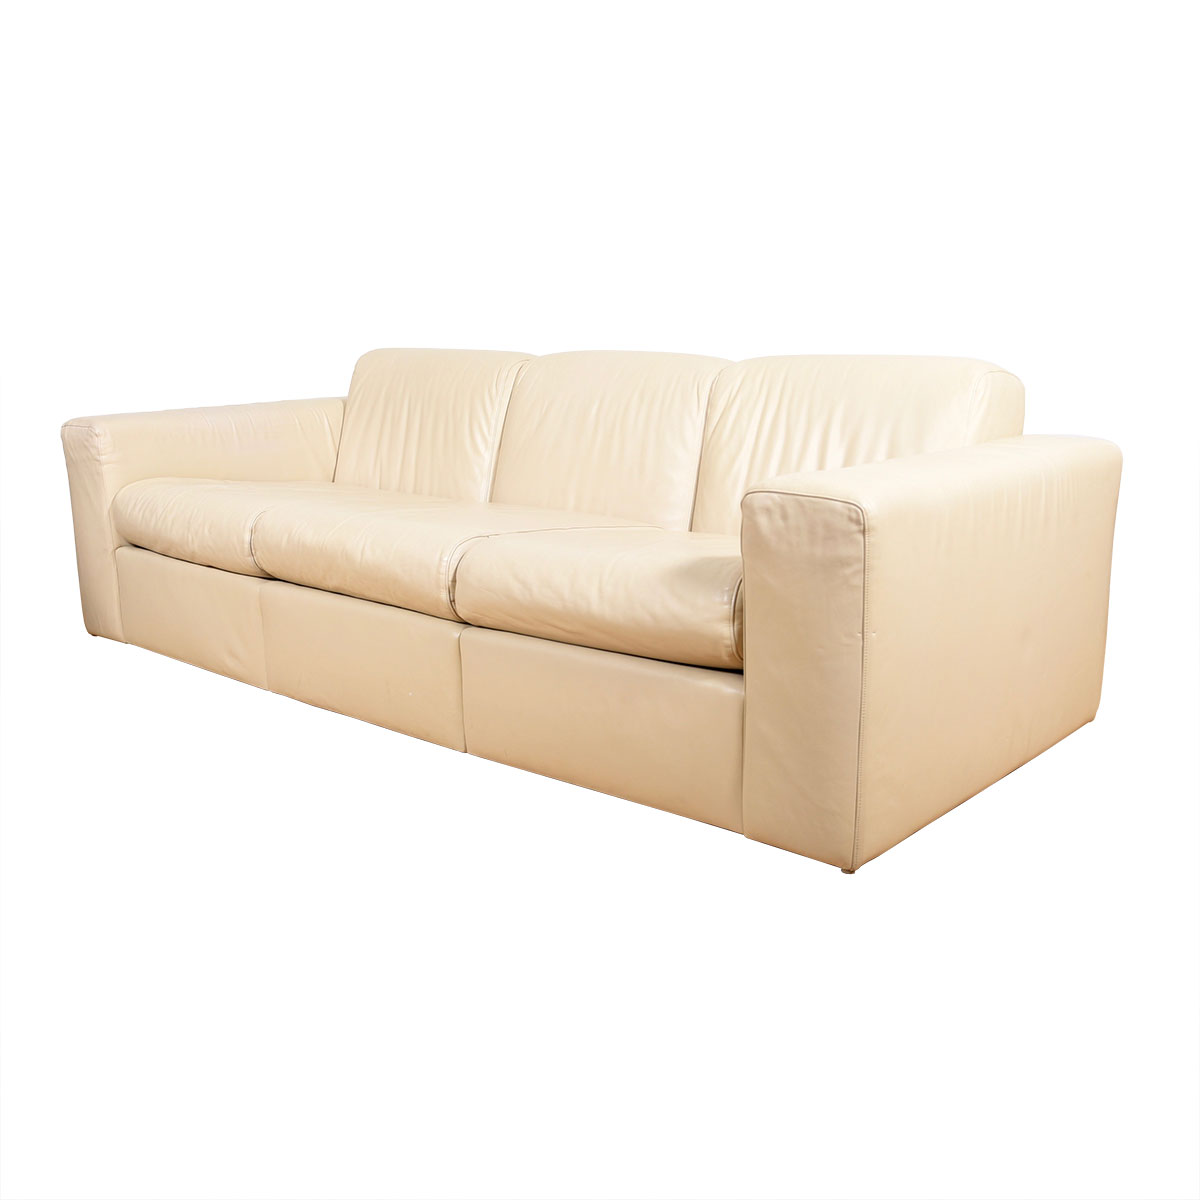 Jack Cartwright Leather American Modernist Sofa — Superb Condition!